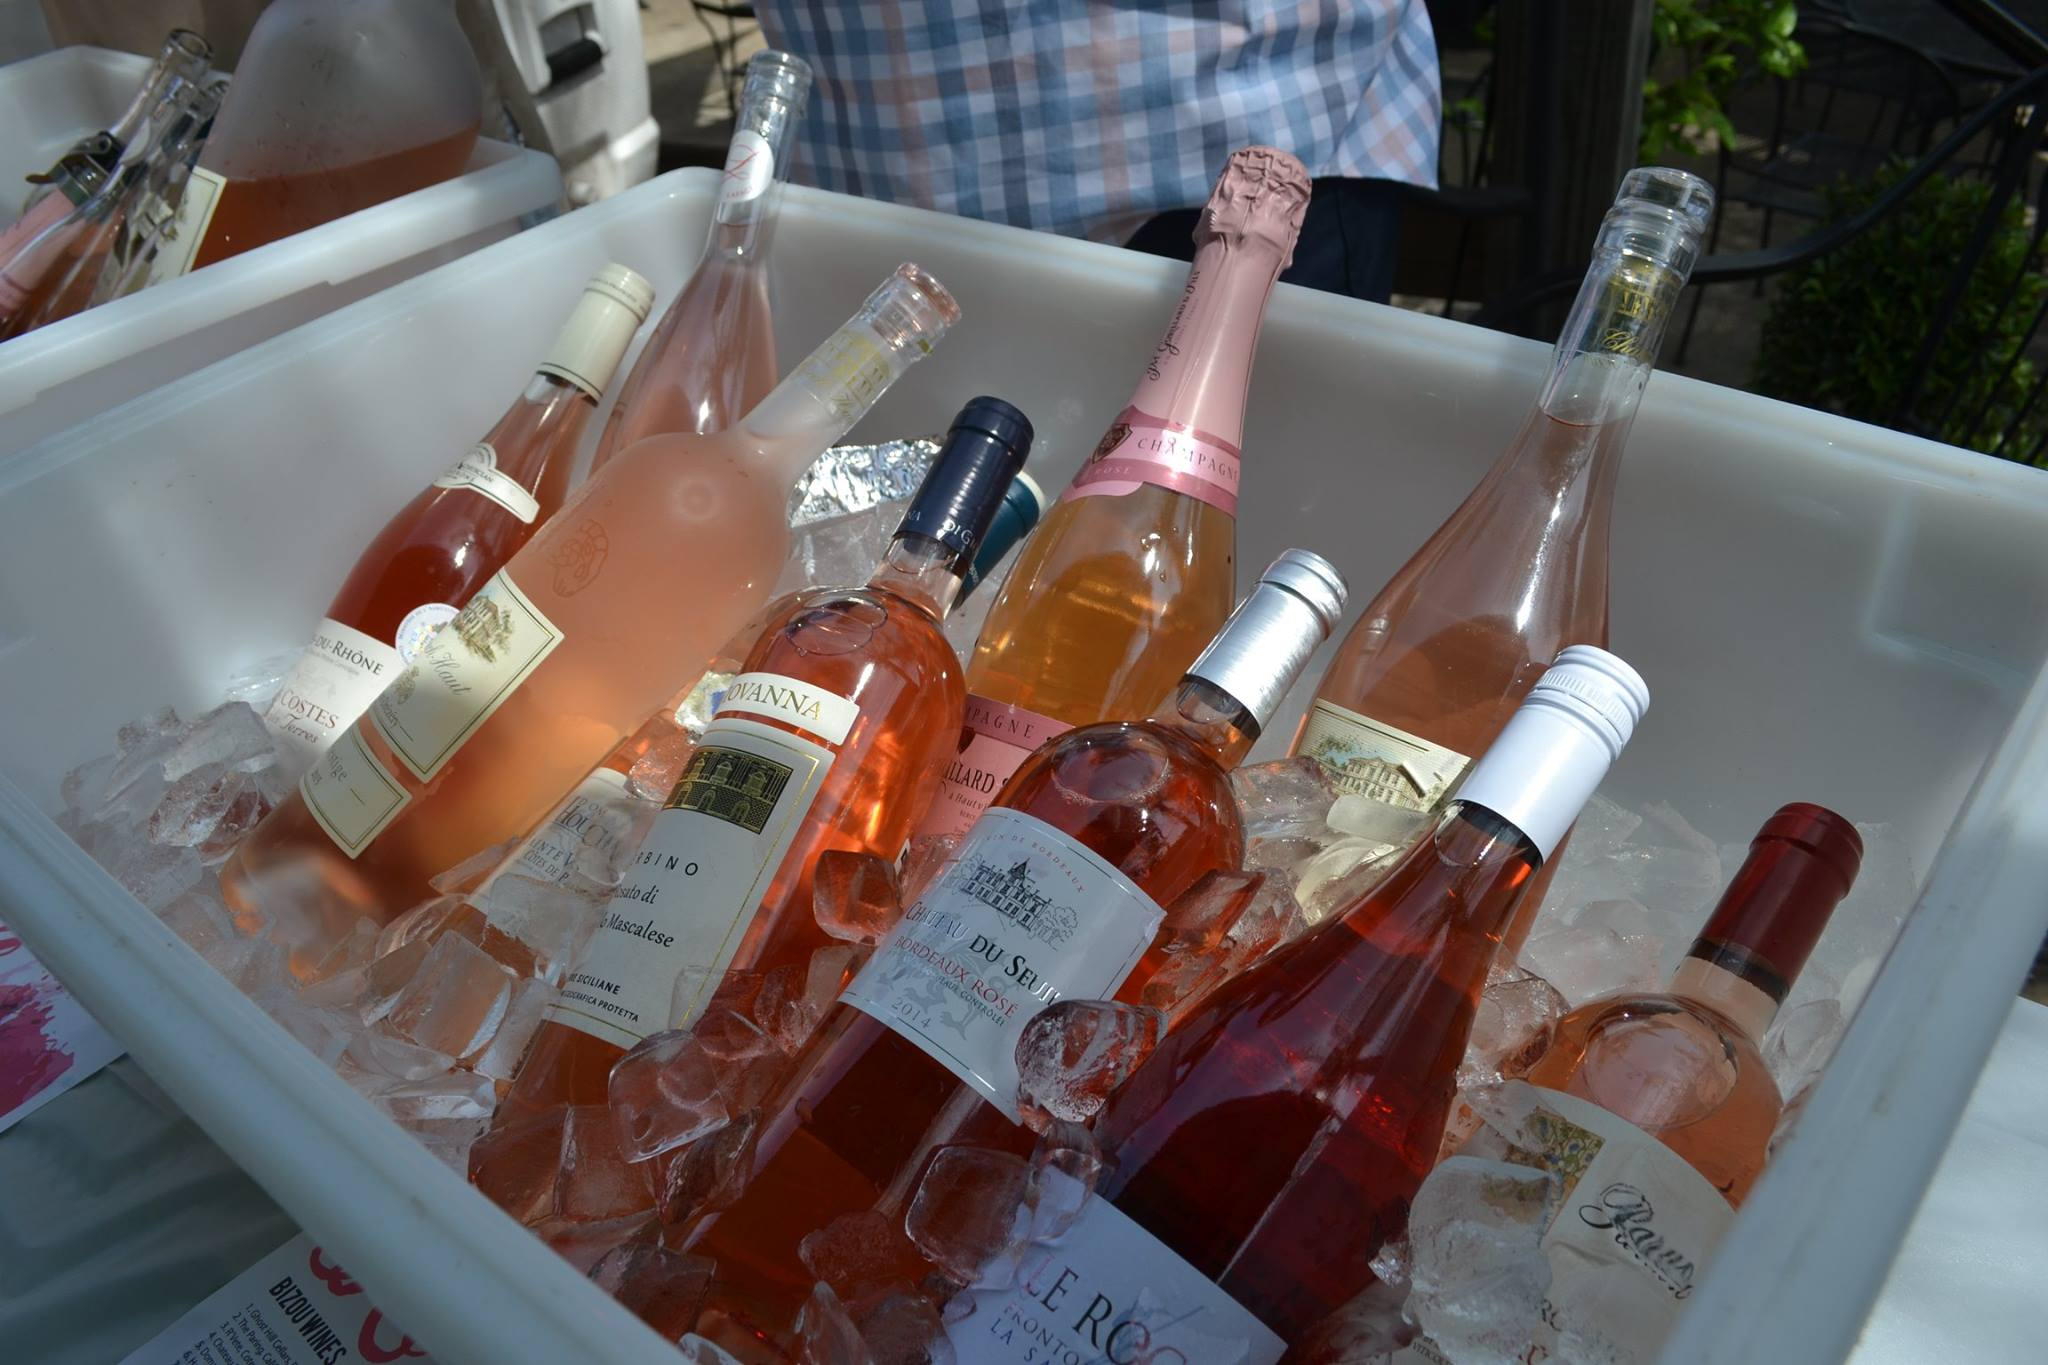 Two Days of Rosé - April 2016